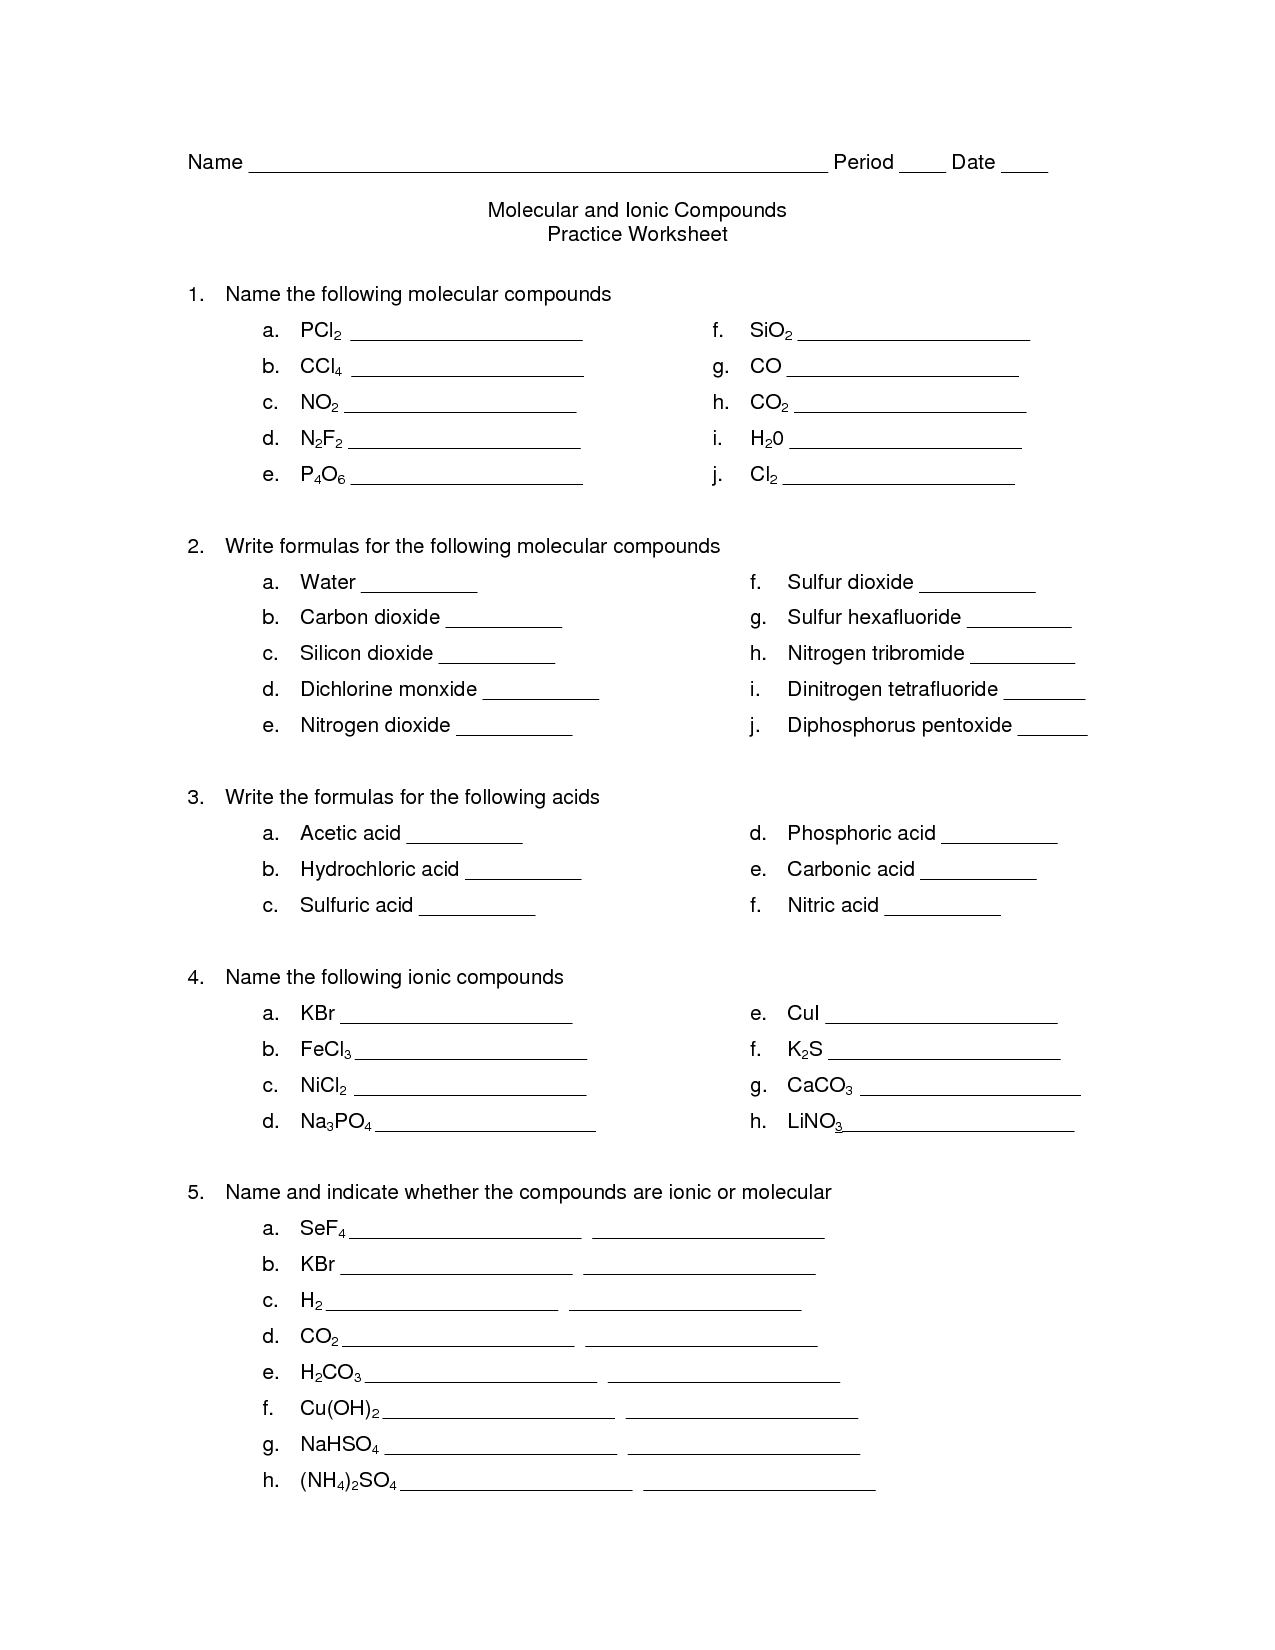 Worksheet On Naming Ionic And Molecular Compounds